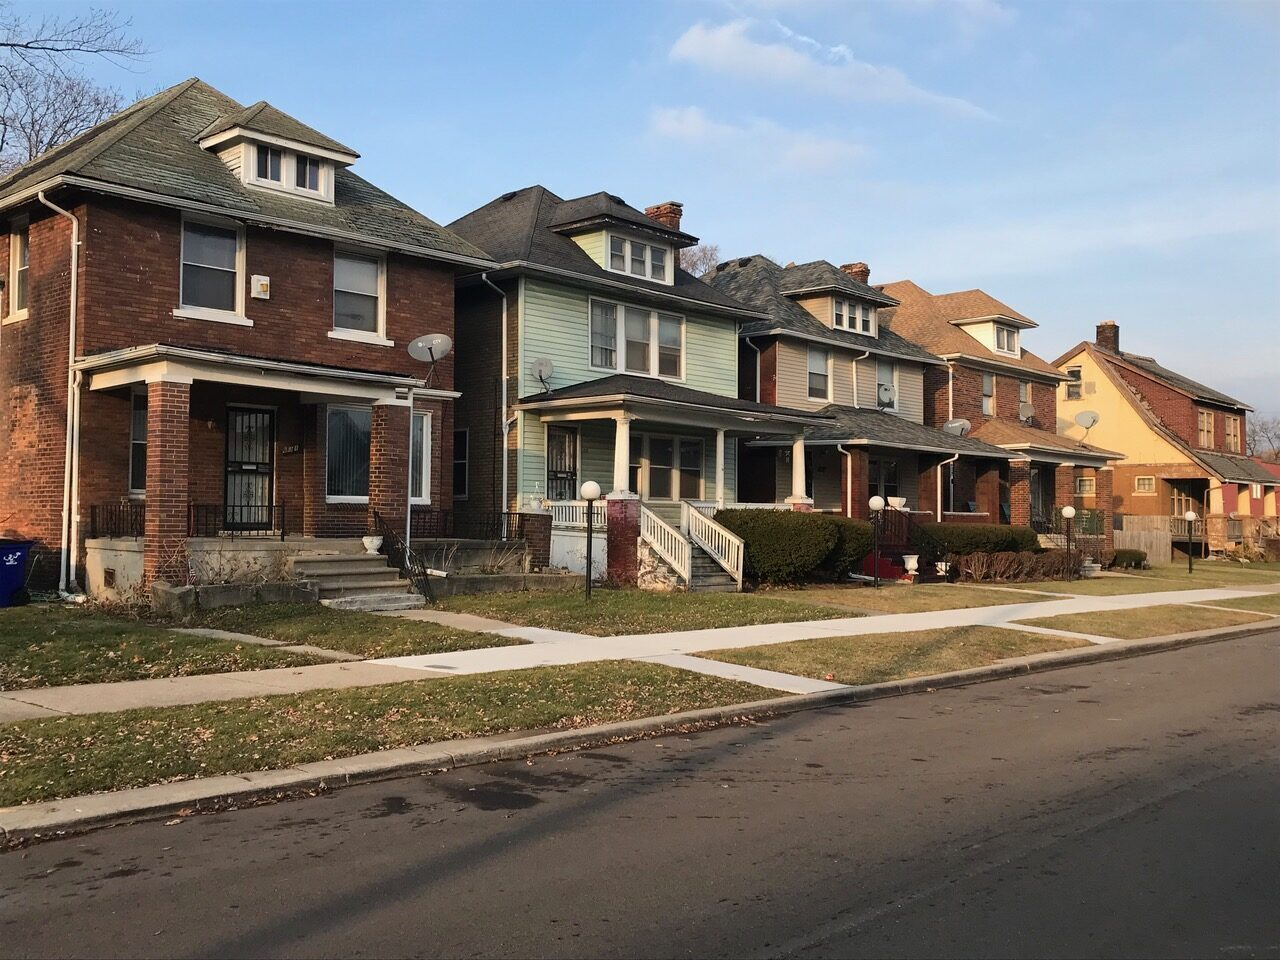 Low income housing in Detroit